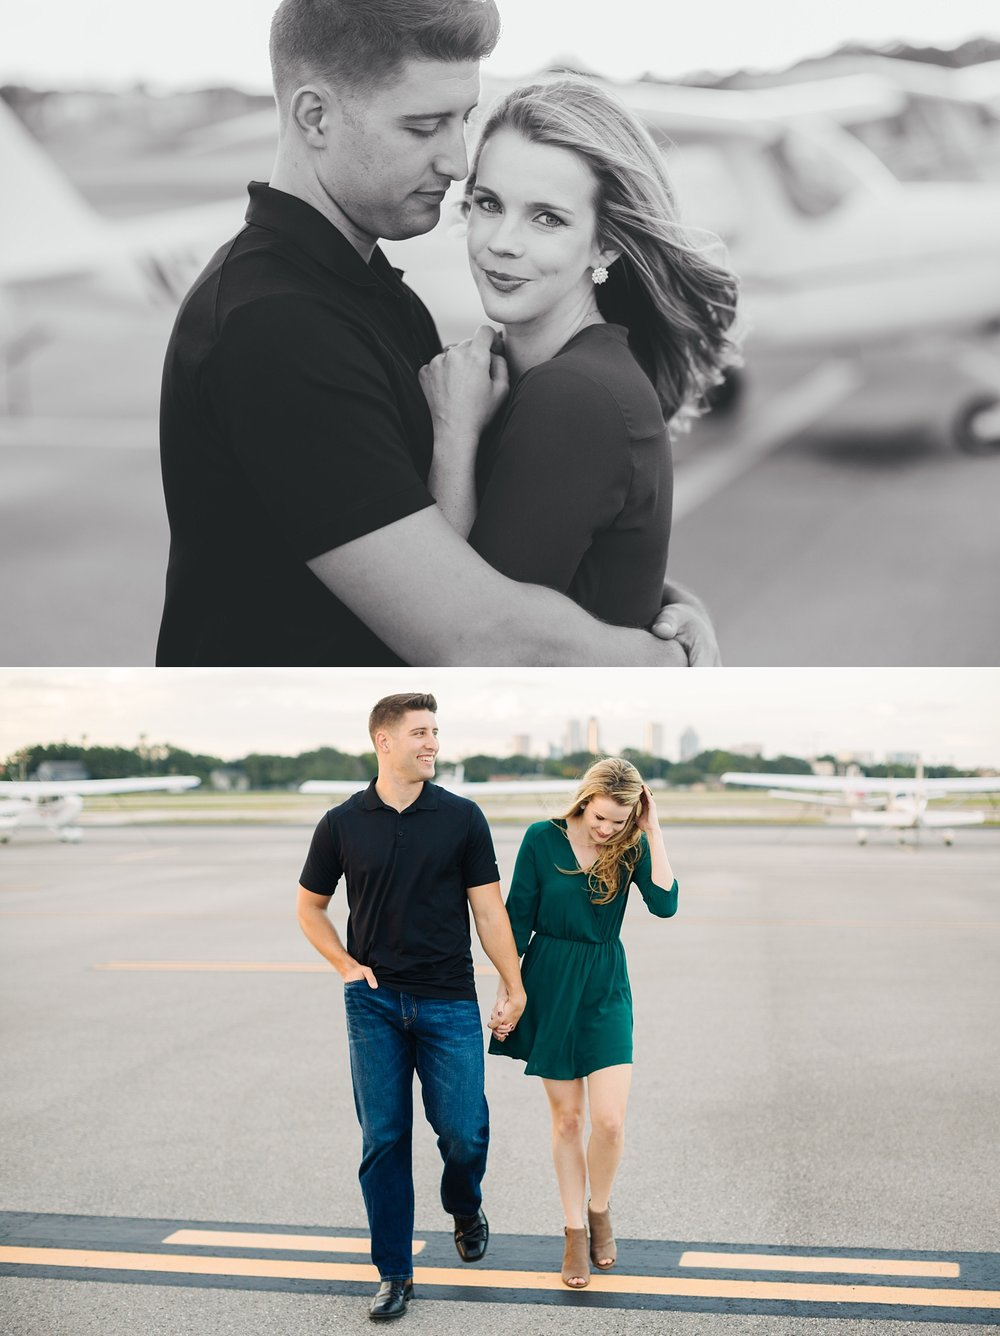 tampa airport engagement session-8.jpg